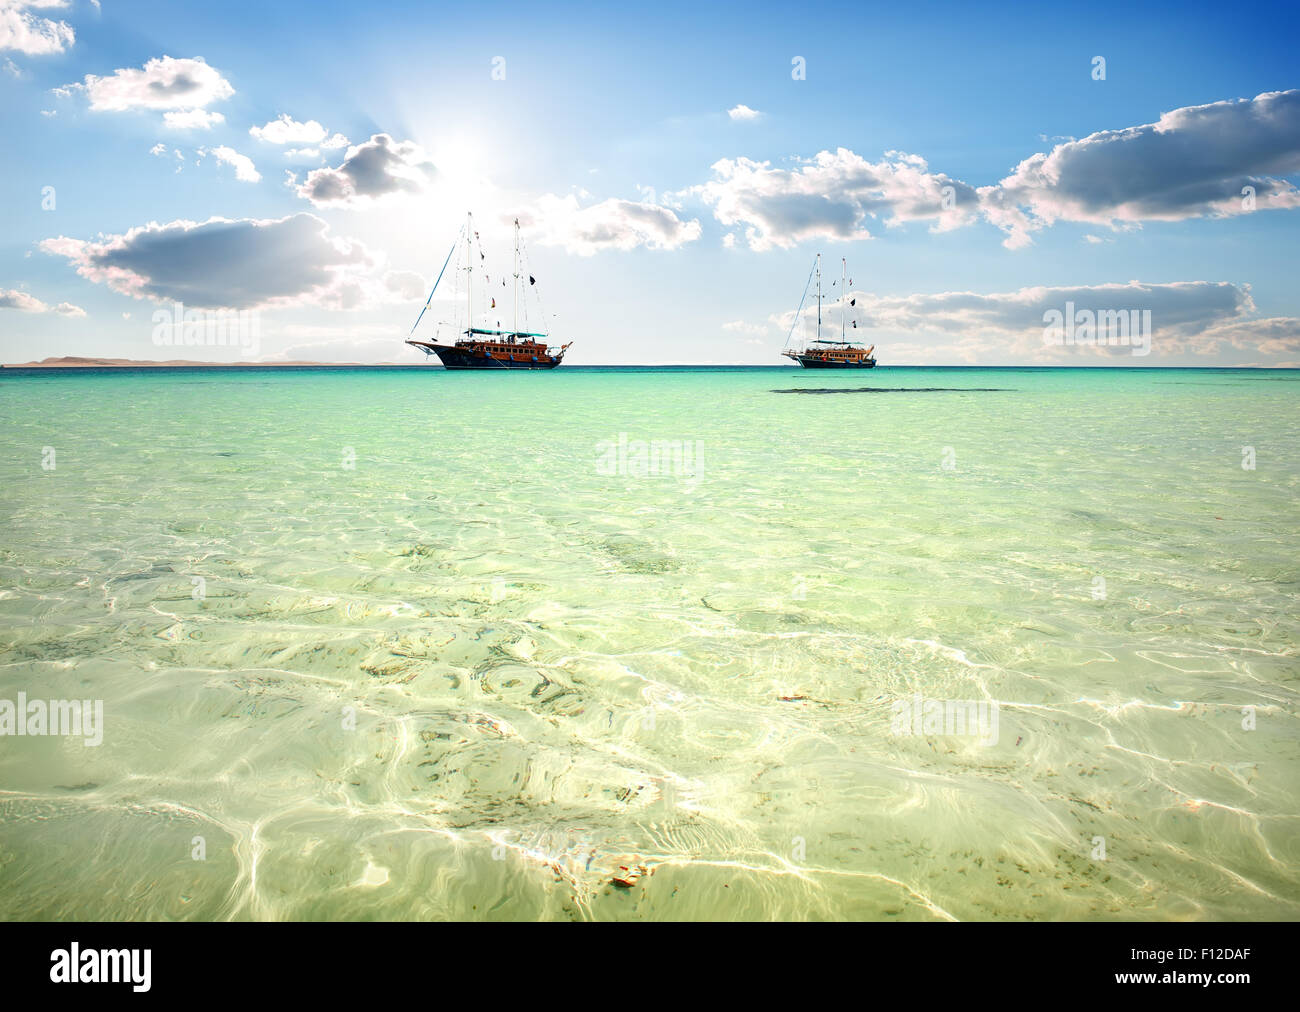 Two sailboats in turquoise sea under sunlight Stock Photo